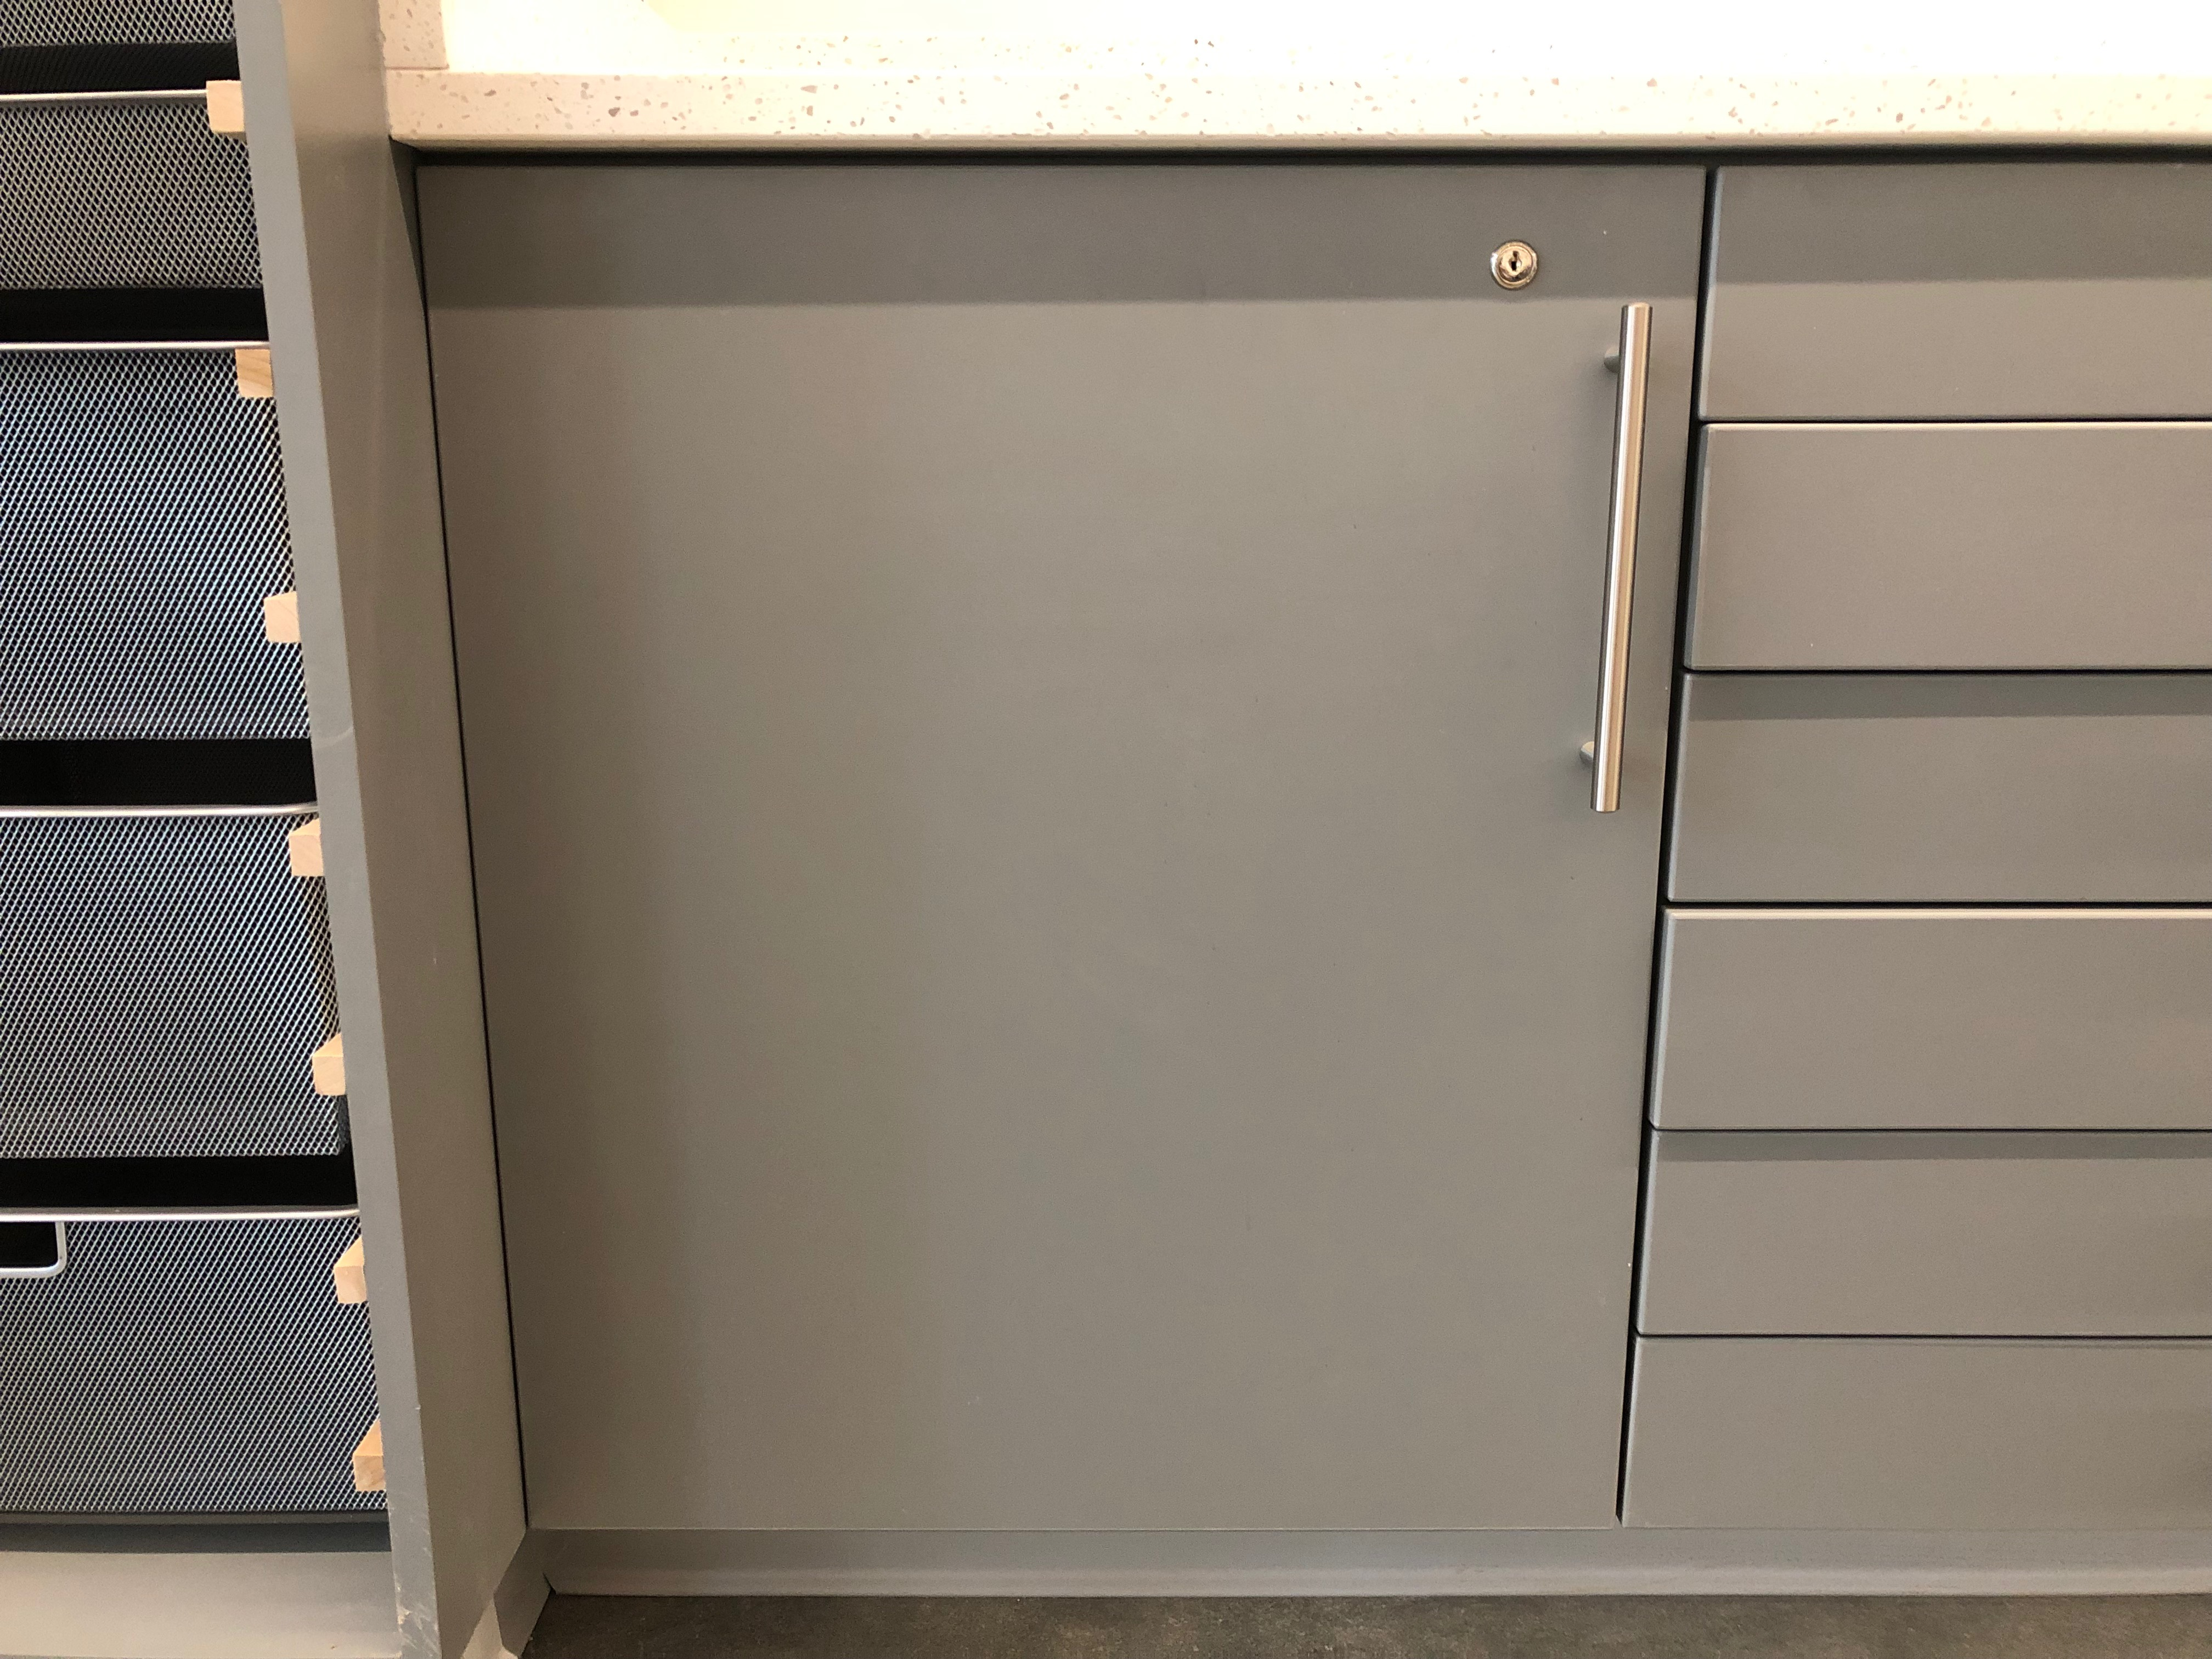 A photo of the projector storage cabinet from the front.